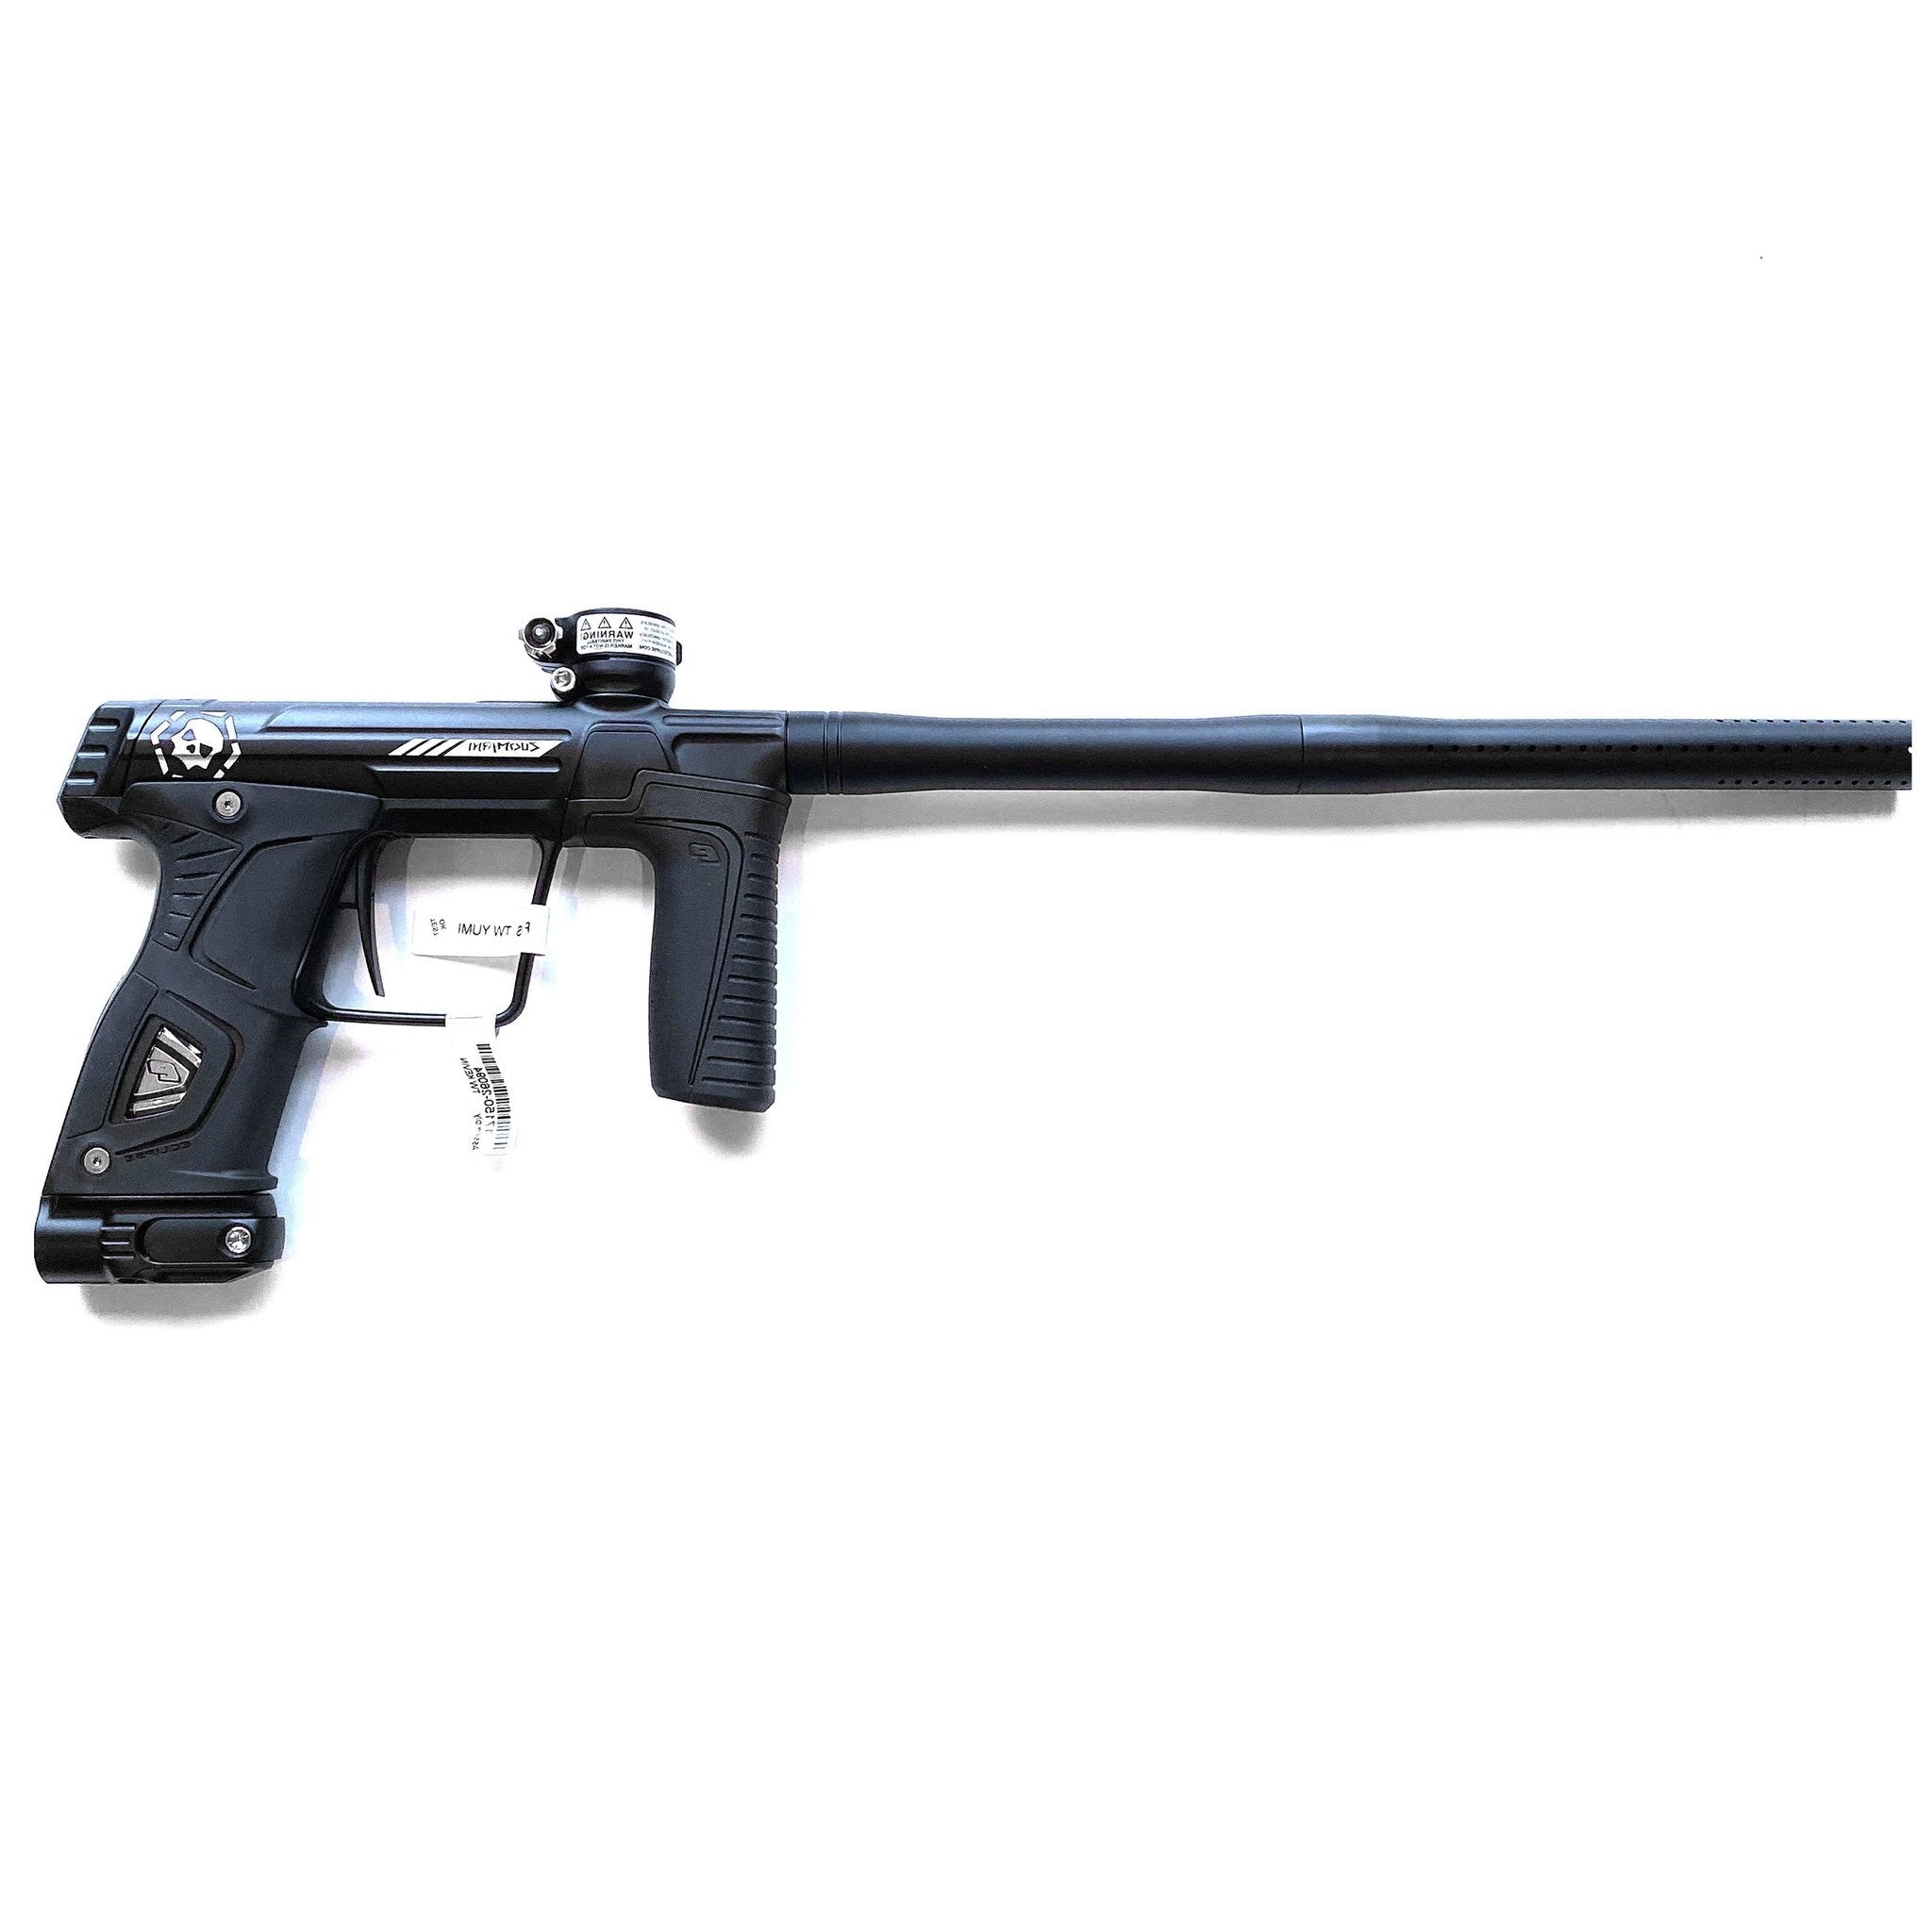 Planet Eclipse Gtek 170R Paintball Gun - Infamous Edition